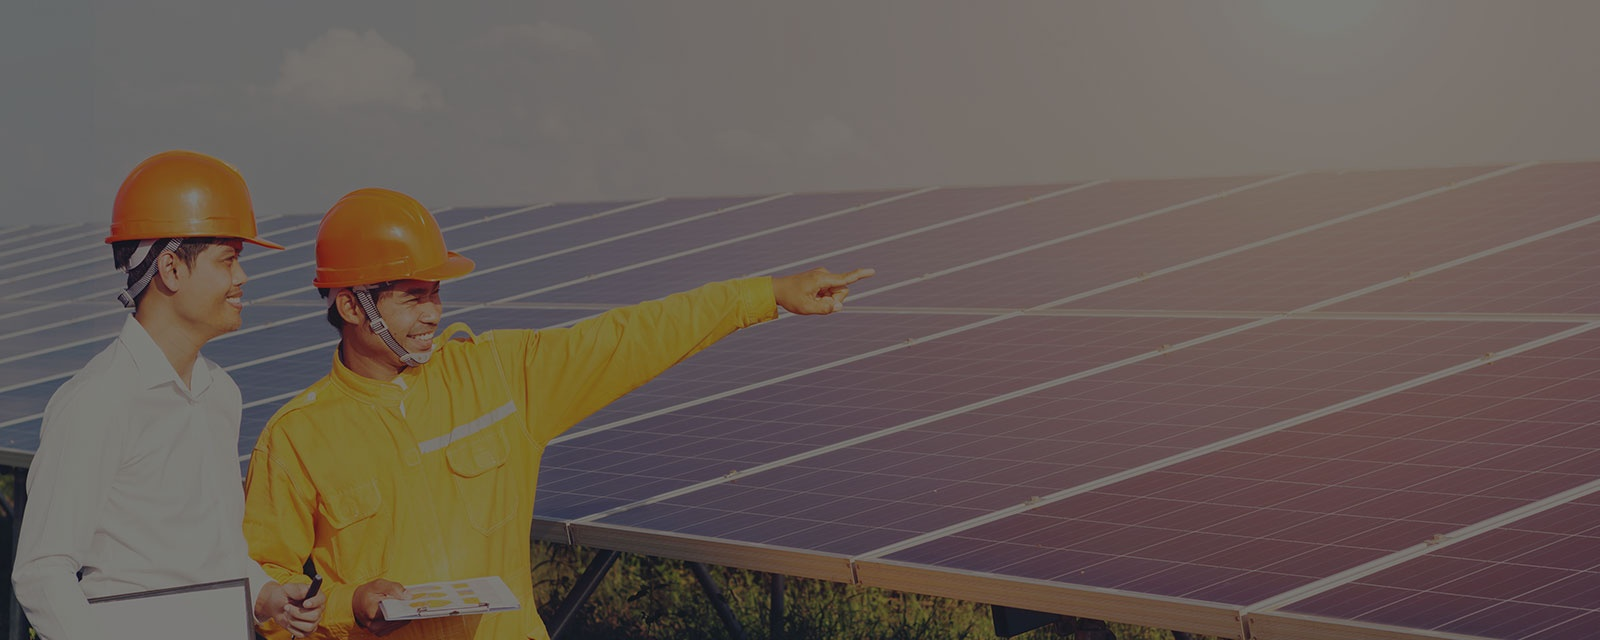 Solar Energy Consultation Services In Windermere